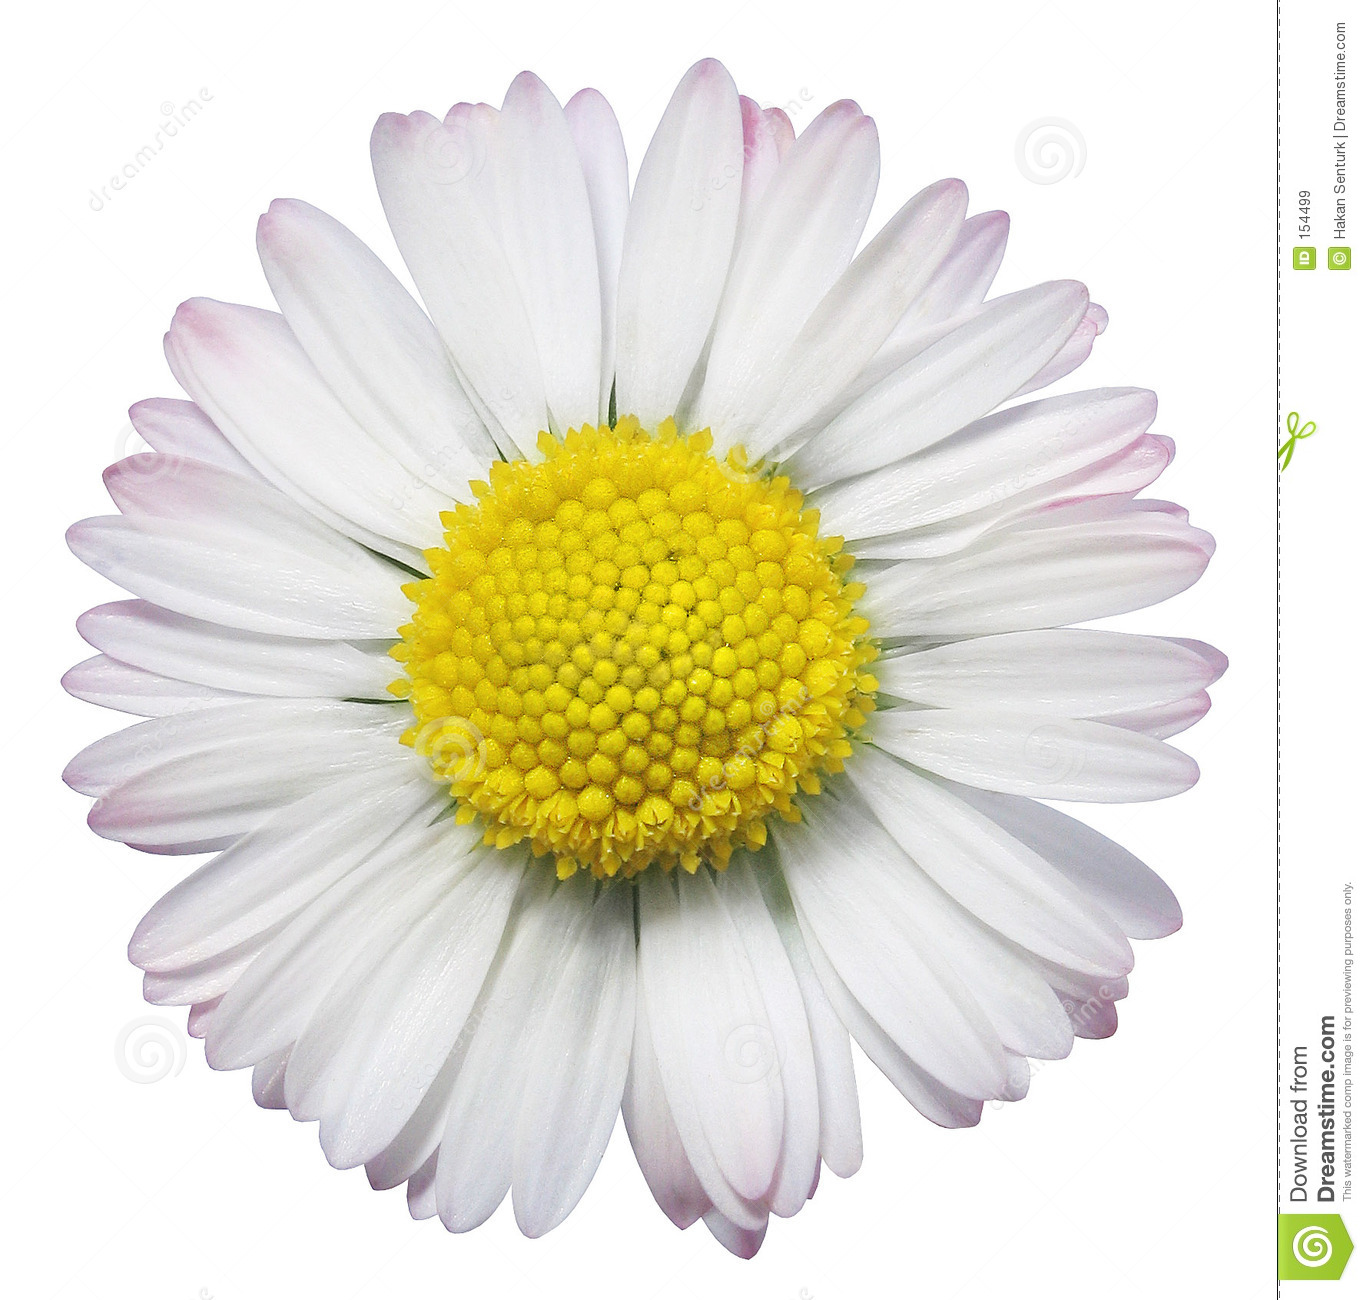 daisy flower royalty free stock photos  image, Beautiful flower